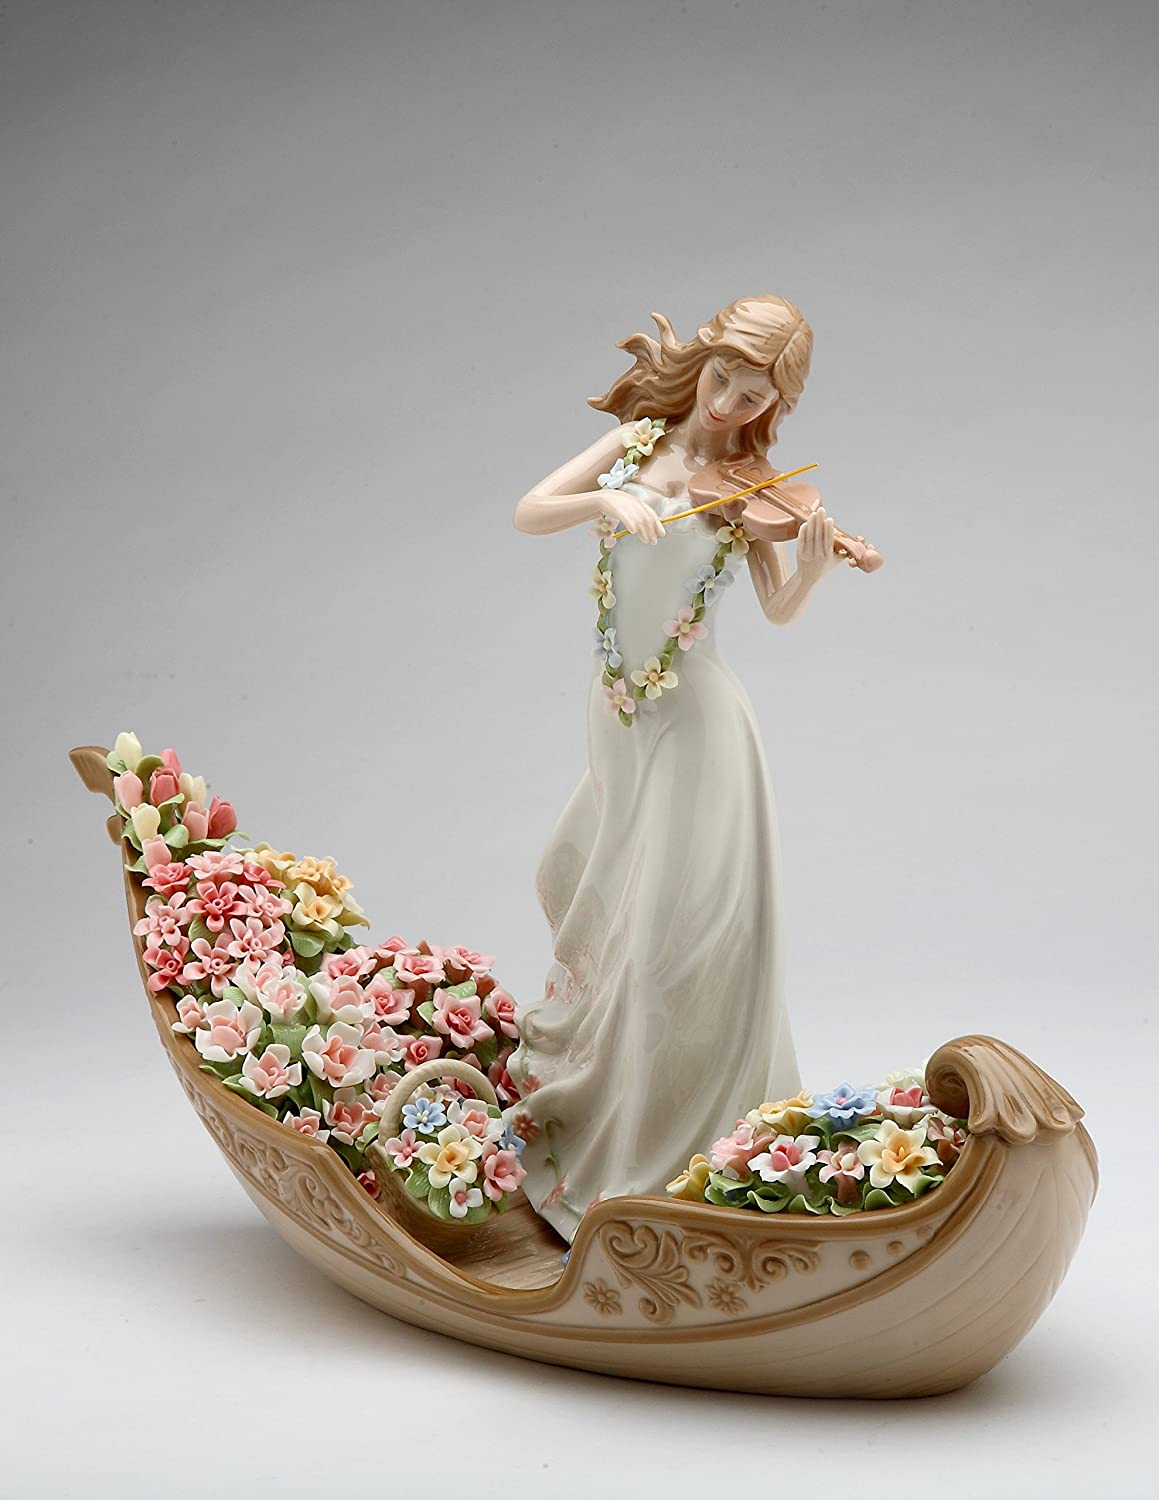 Amazon Com Cosmos Gifts 96643 Fine Elegant Porcelain Flower Inspiration Lady Playing Violin On Floating Flowers Boat Figurine 13 1 4 Home Kitchen